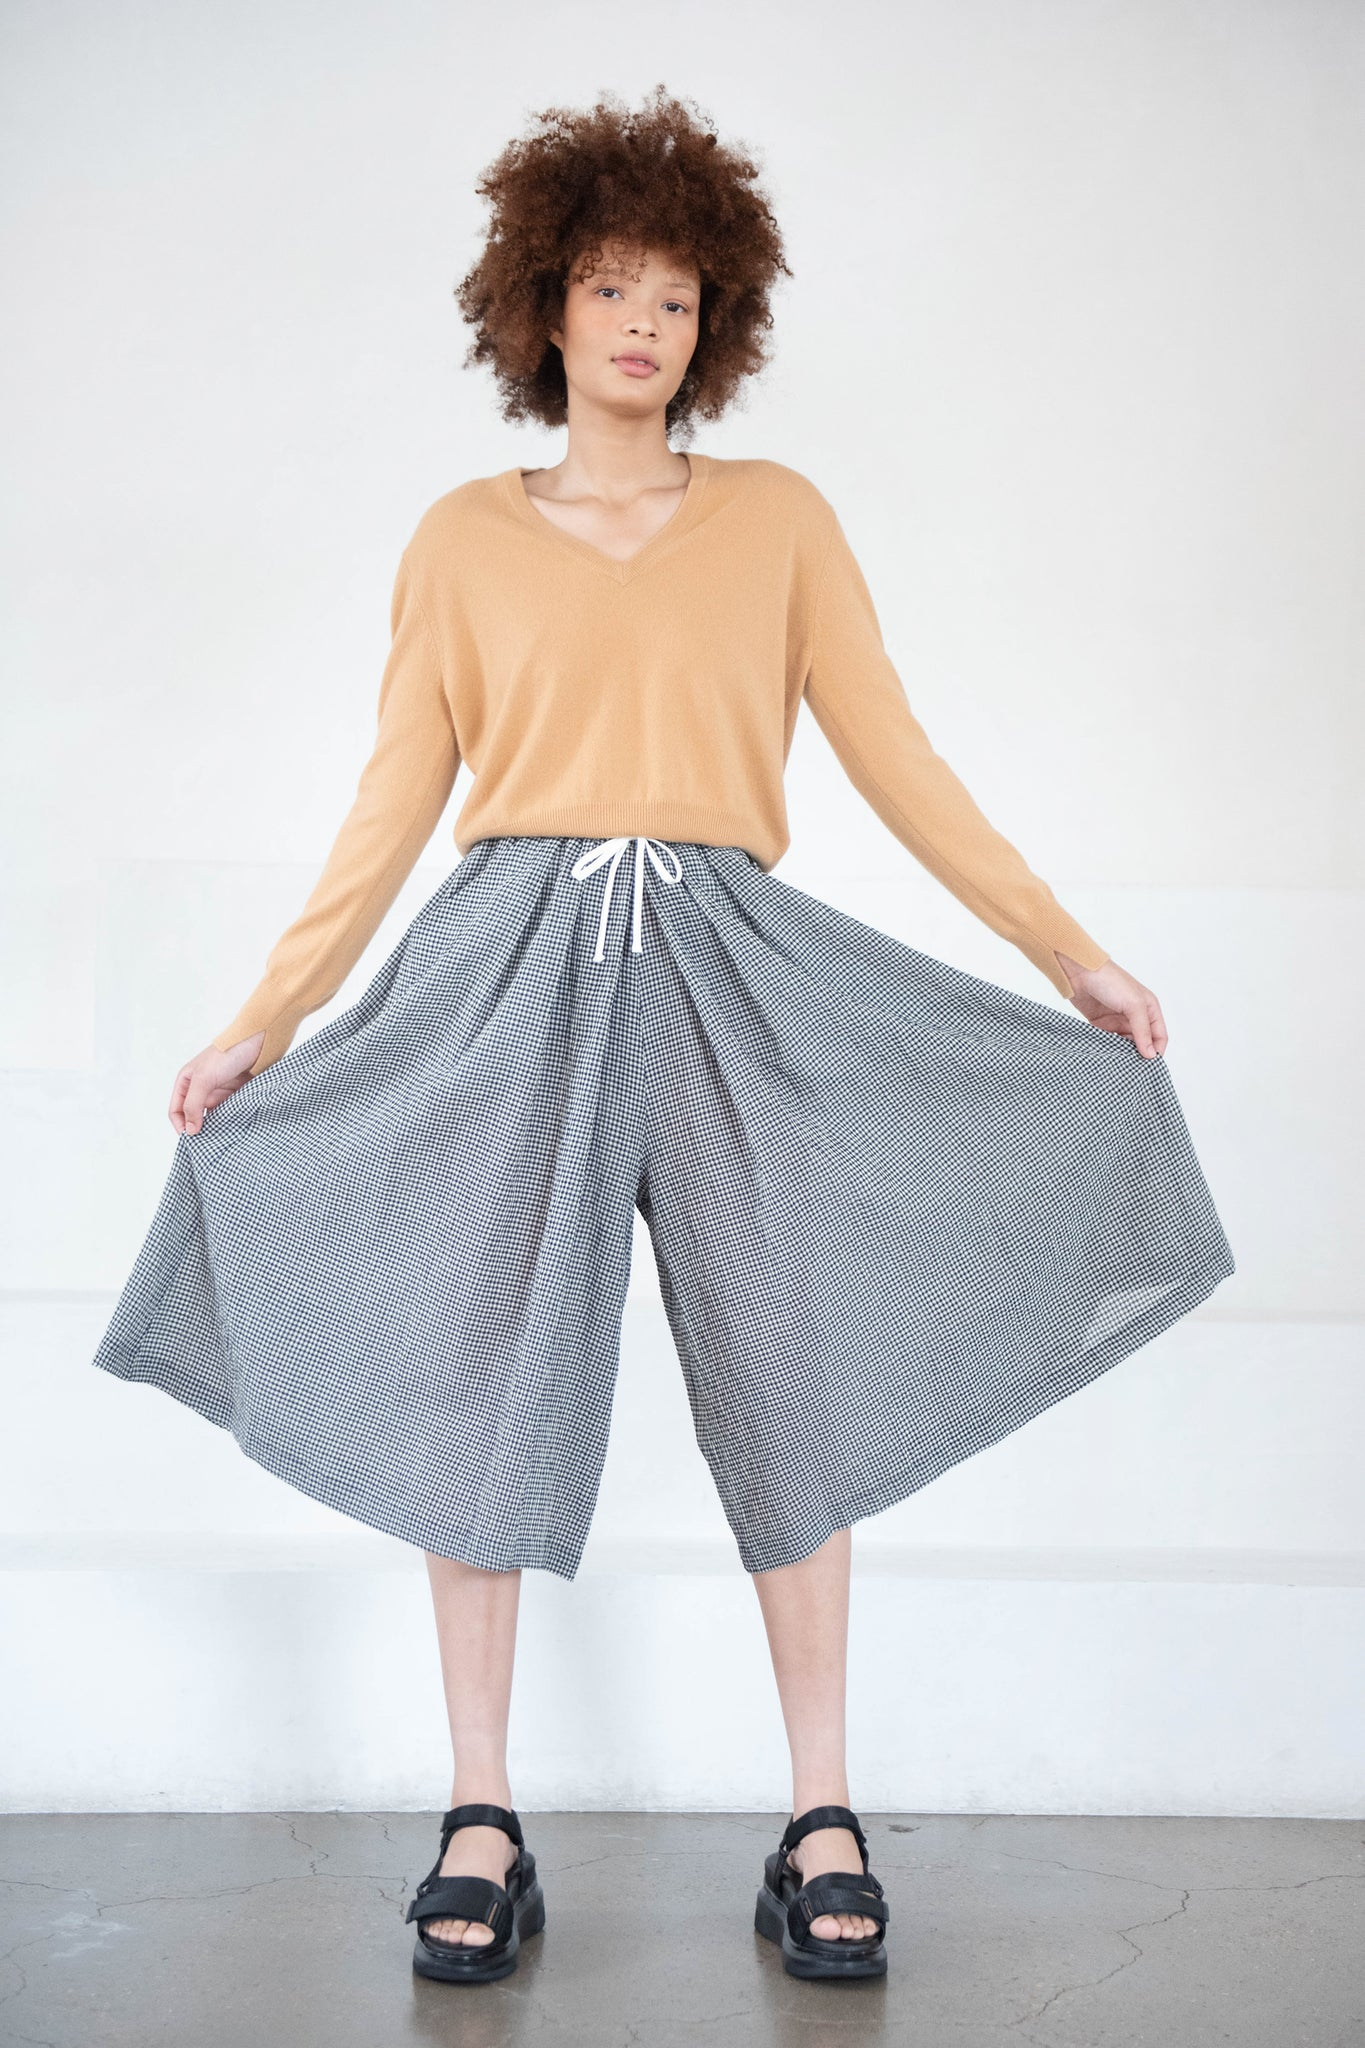 Hache - pant skirt, black and white